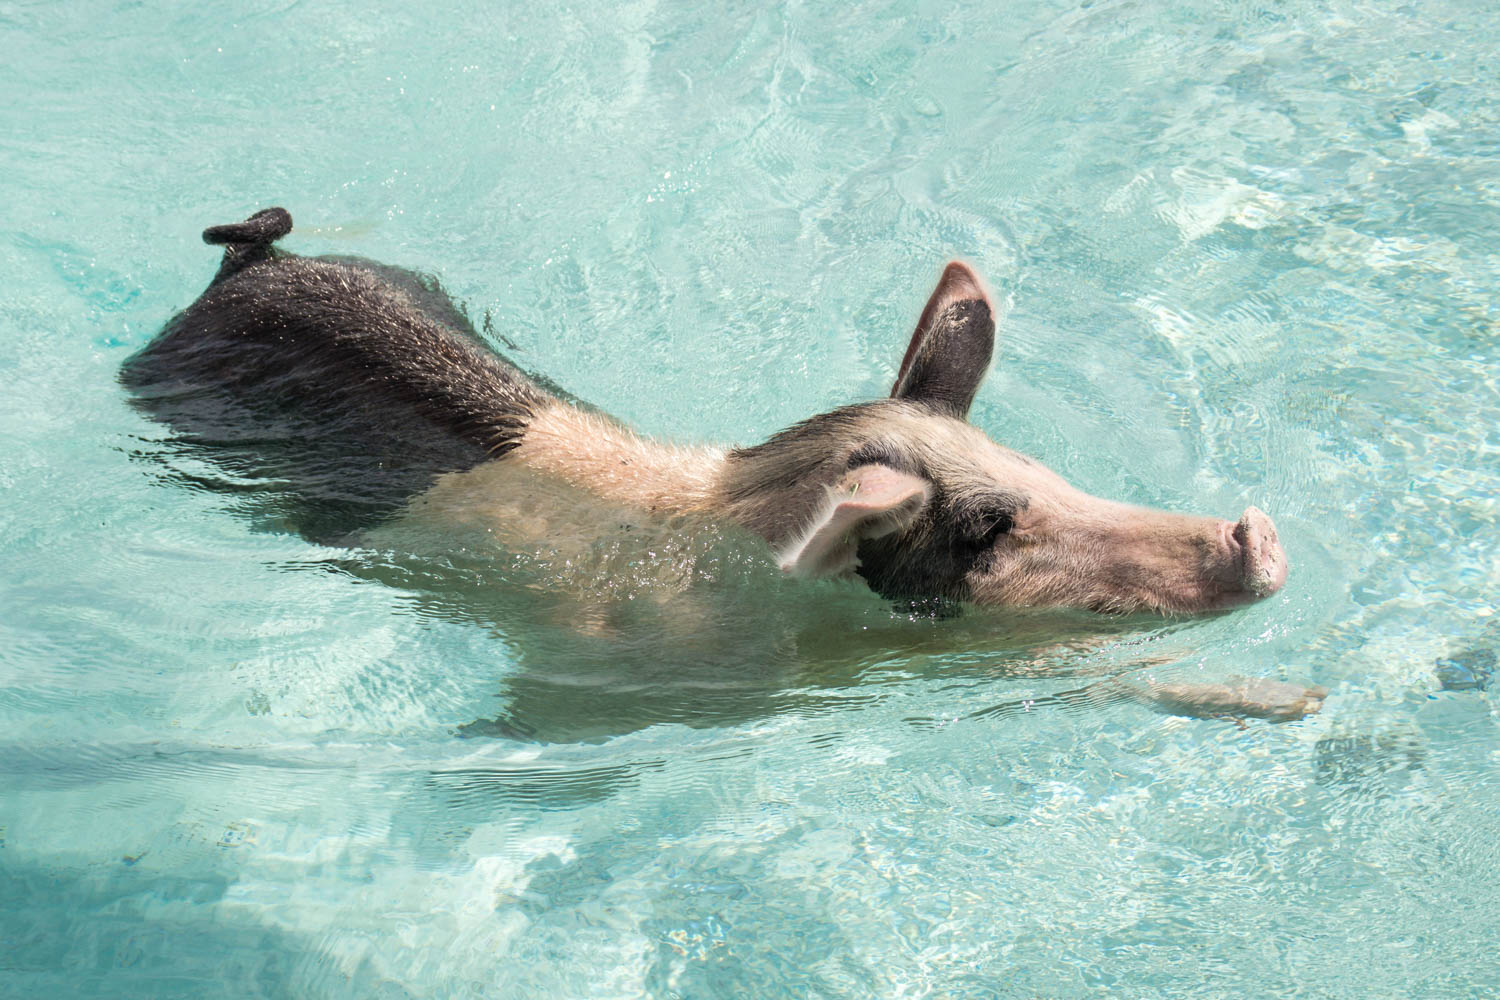 Swimming with pigs Bahamas is the top attraction in the country. An Exuma pigs tour from Nassau will take you directly to Big Major Cay.